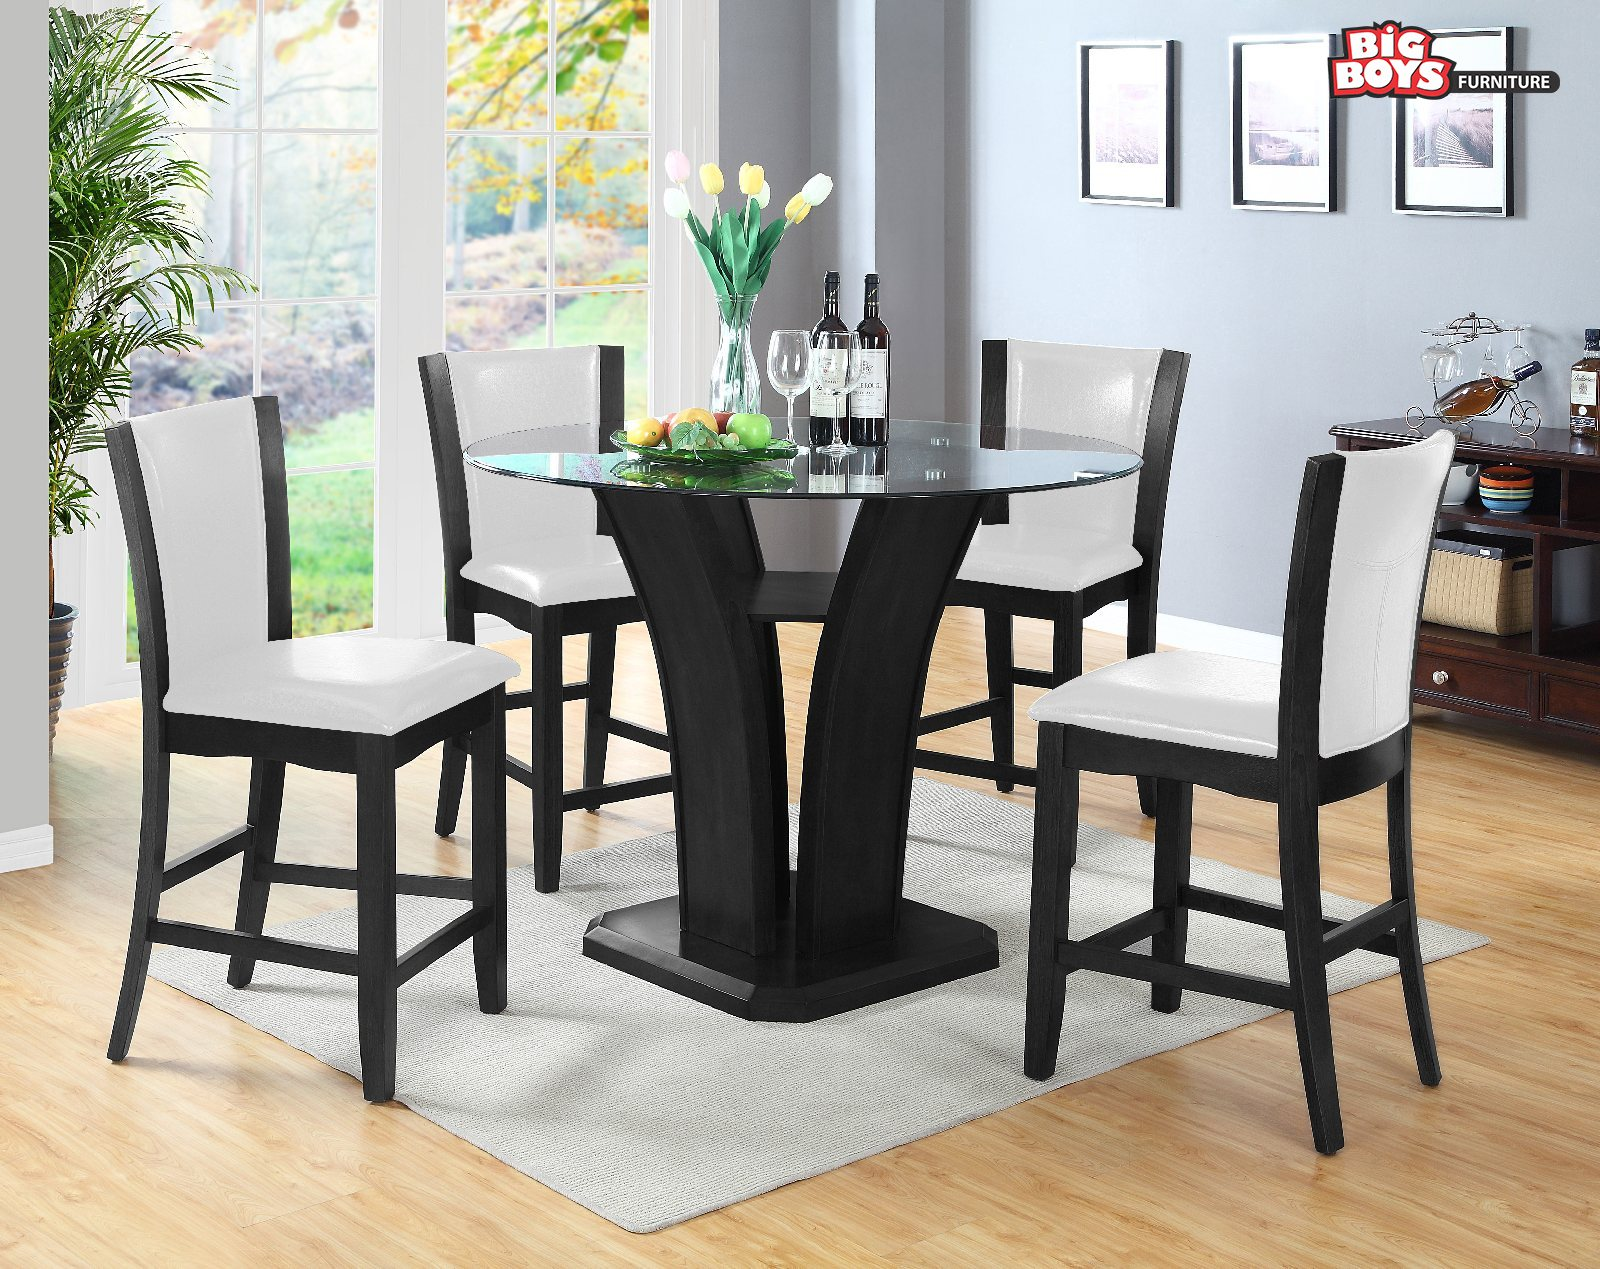 Wide range of Furniture at best prices